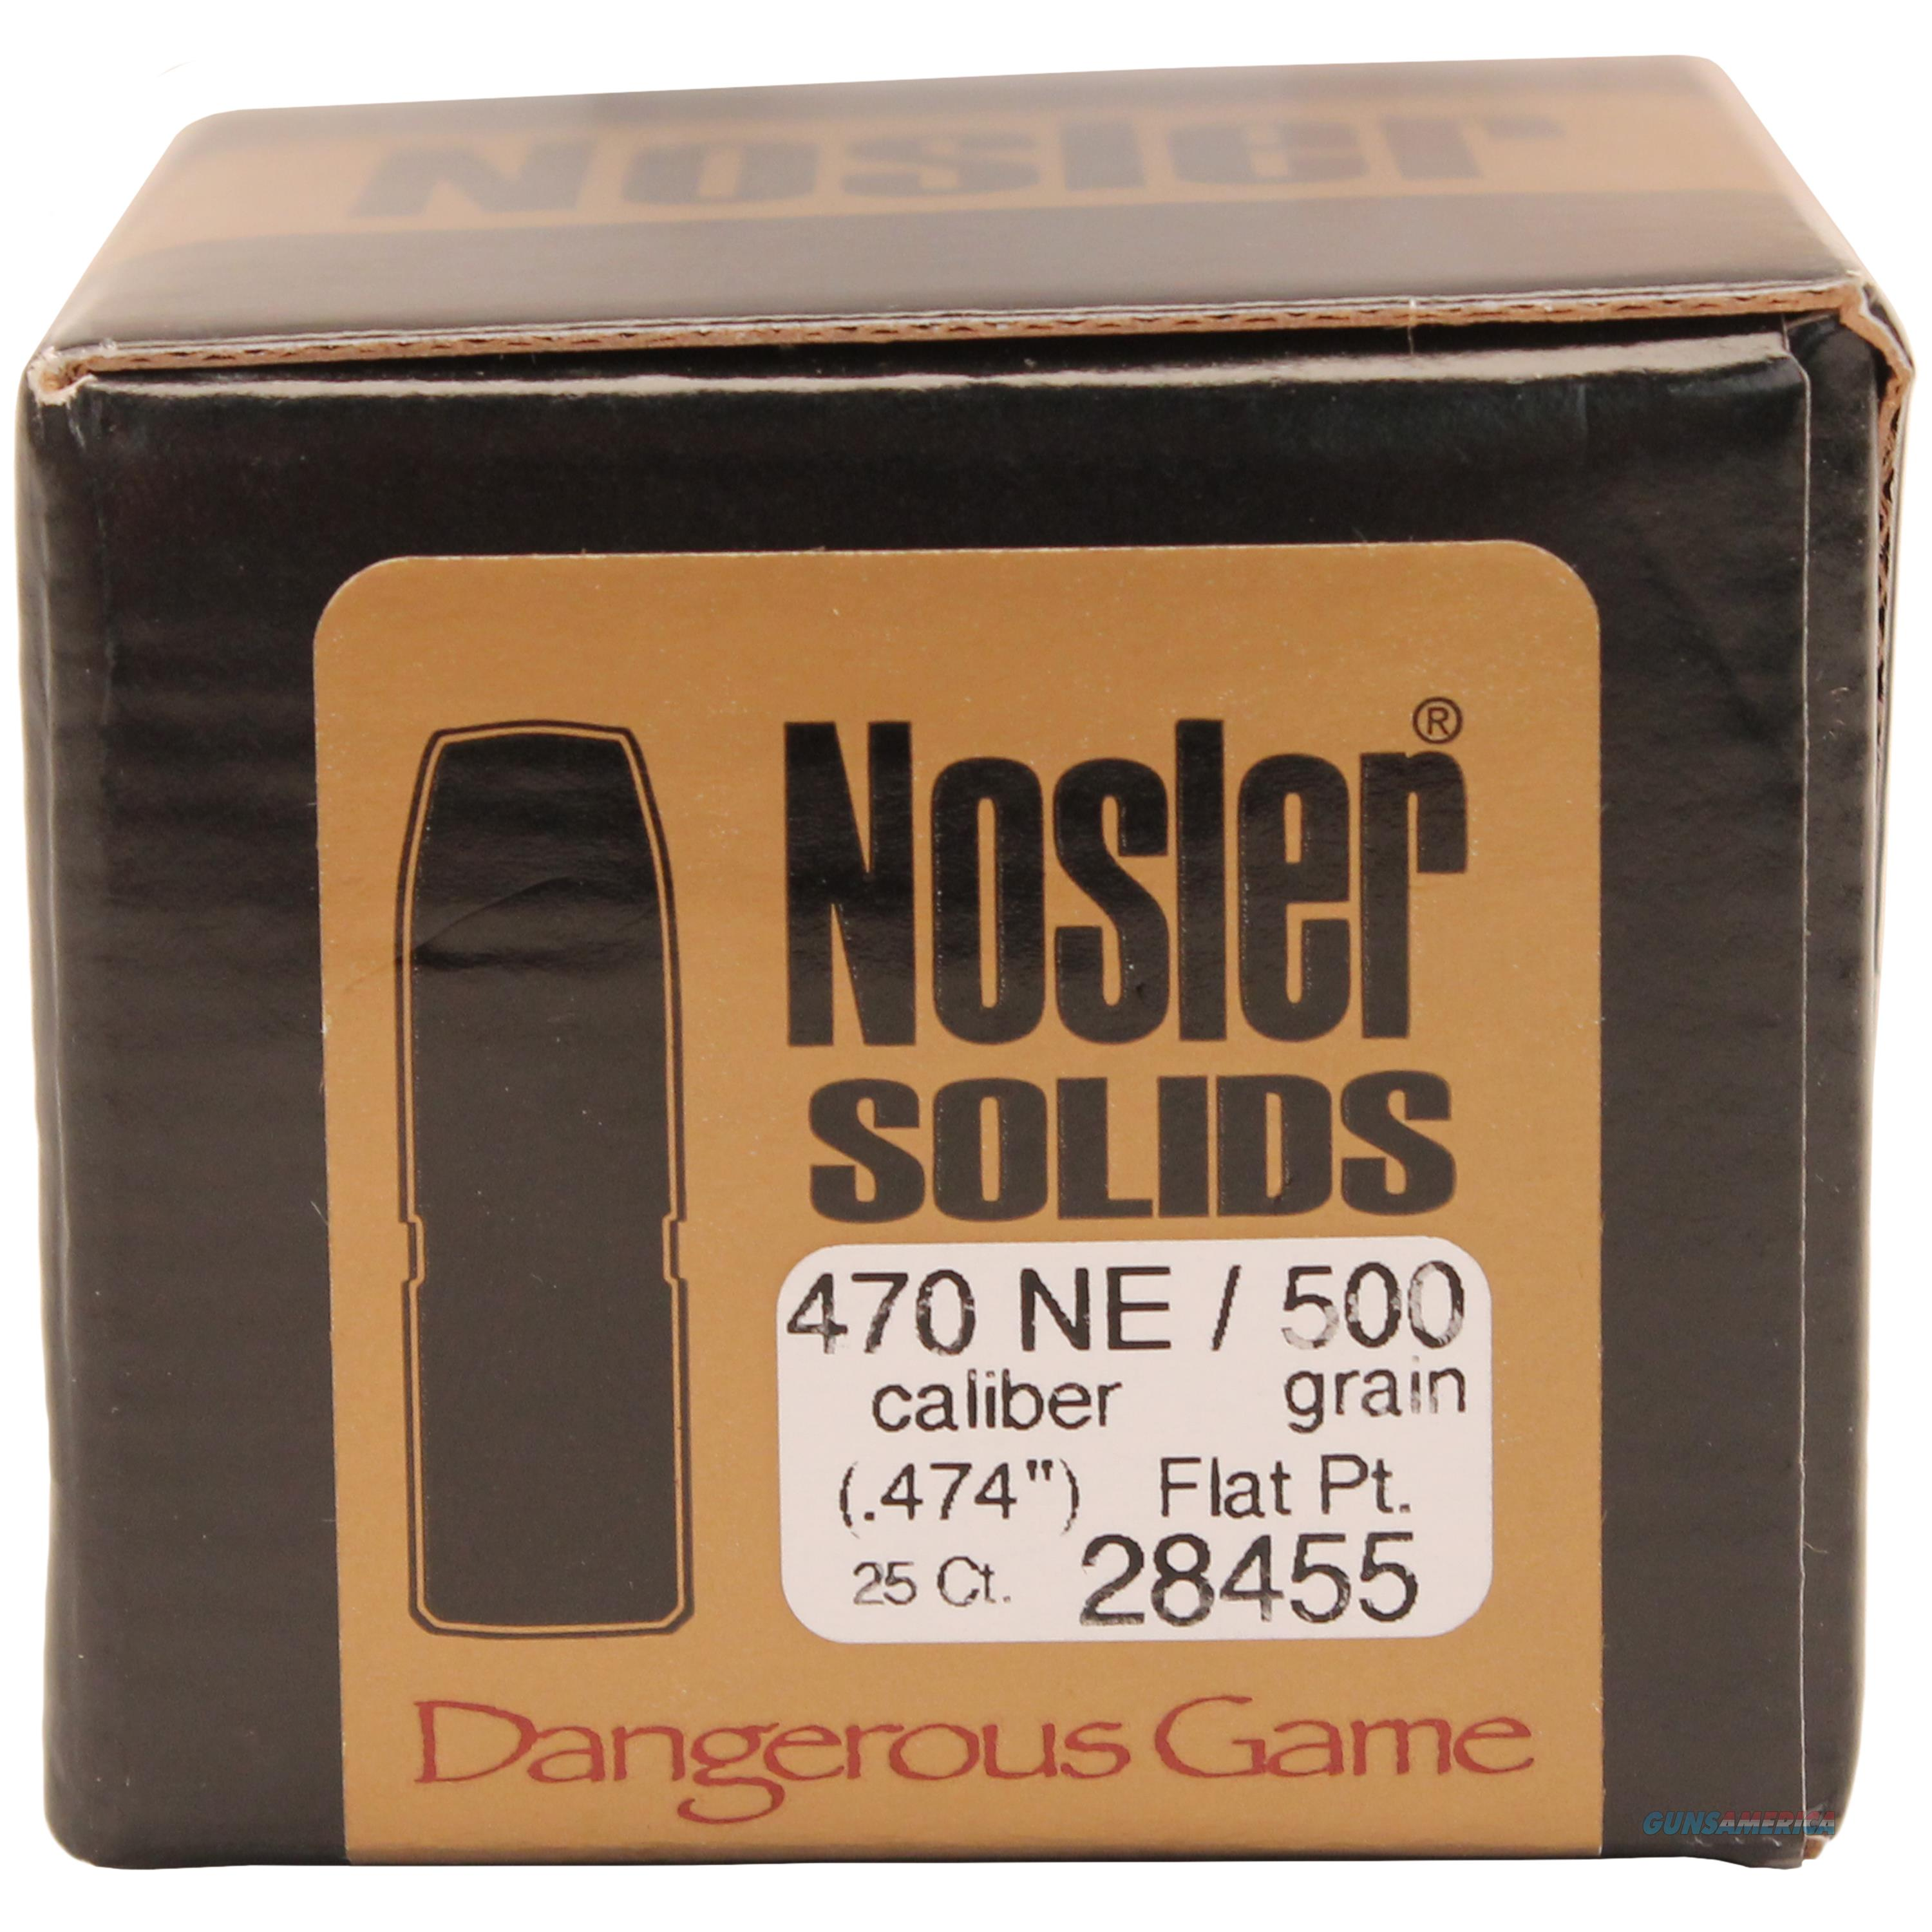 Nosler 470 Nitro Express Solid Bullets, 500 Grains, Flat Nose Lead-Free, Per 25 28455  Non-Guns > Reloading > Components > Bullets